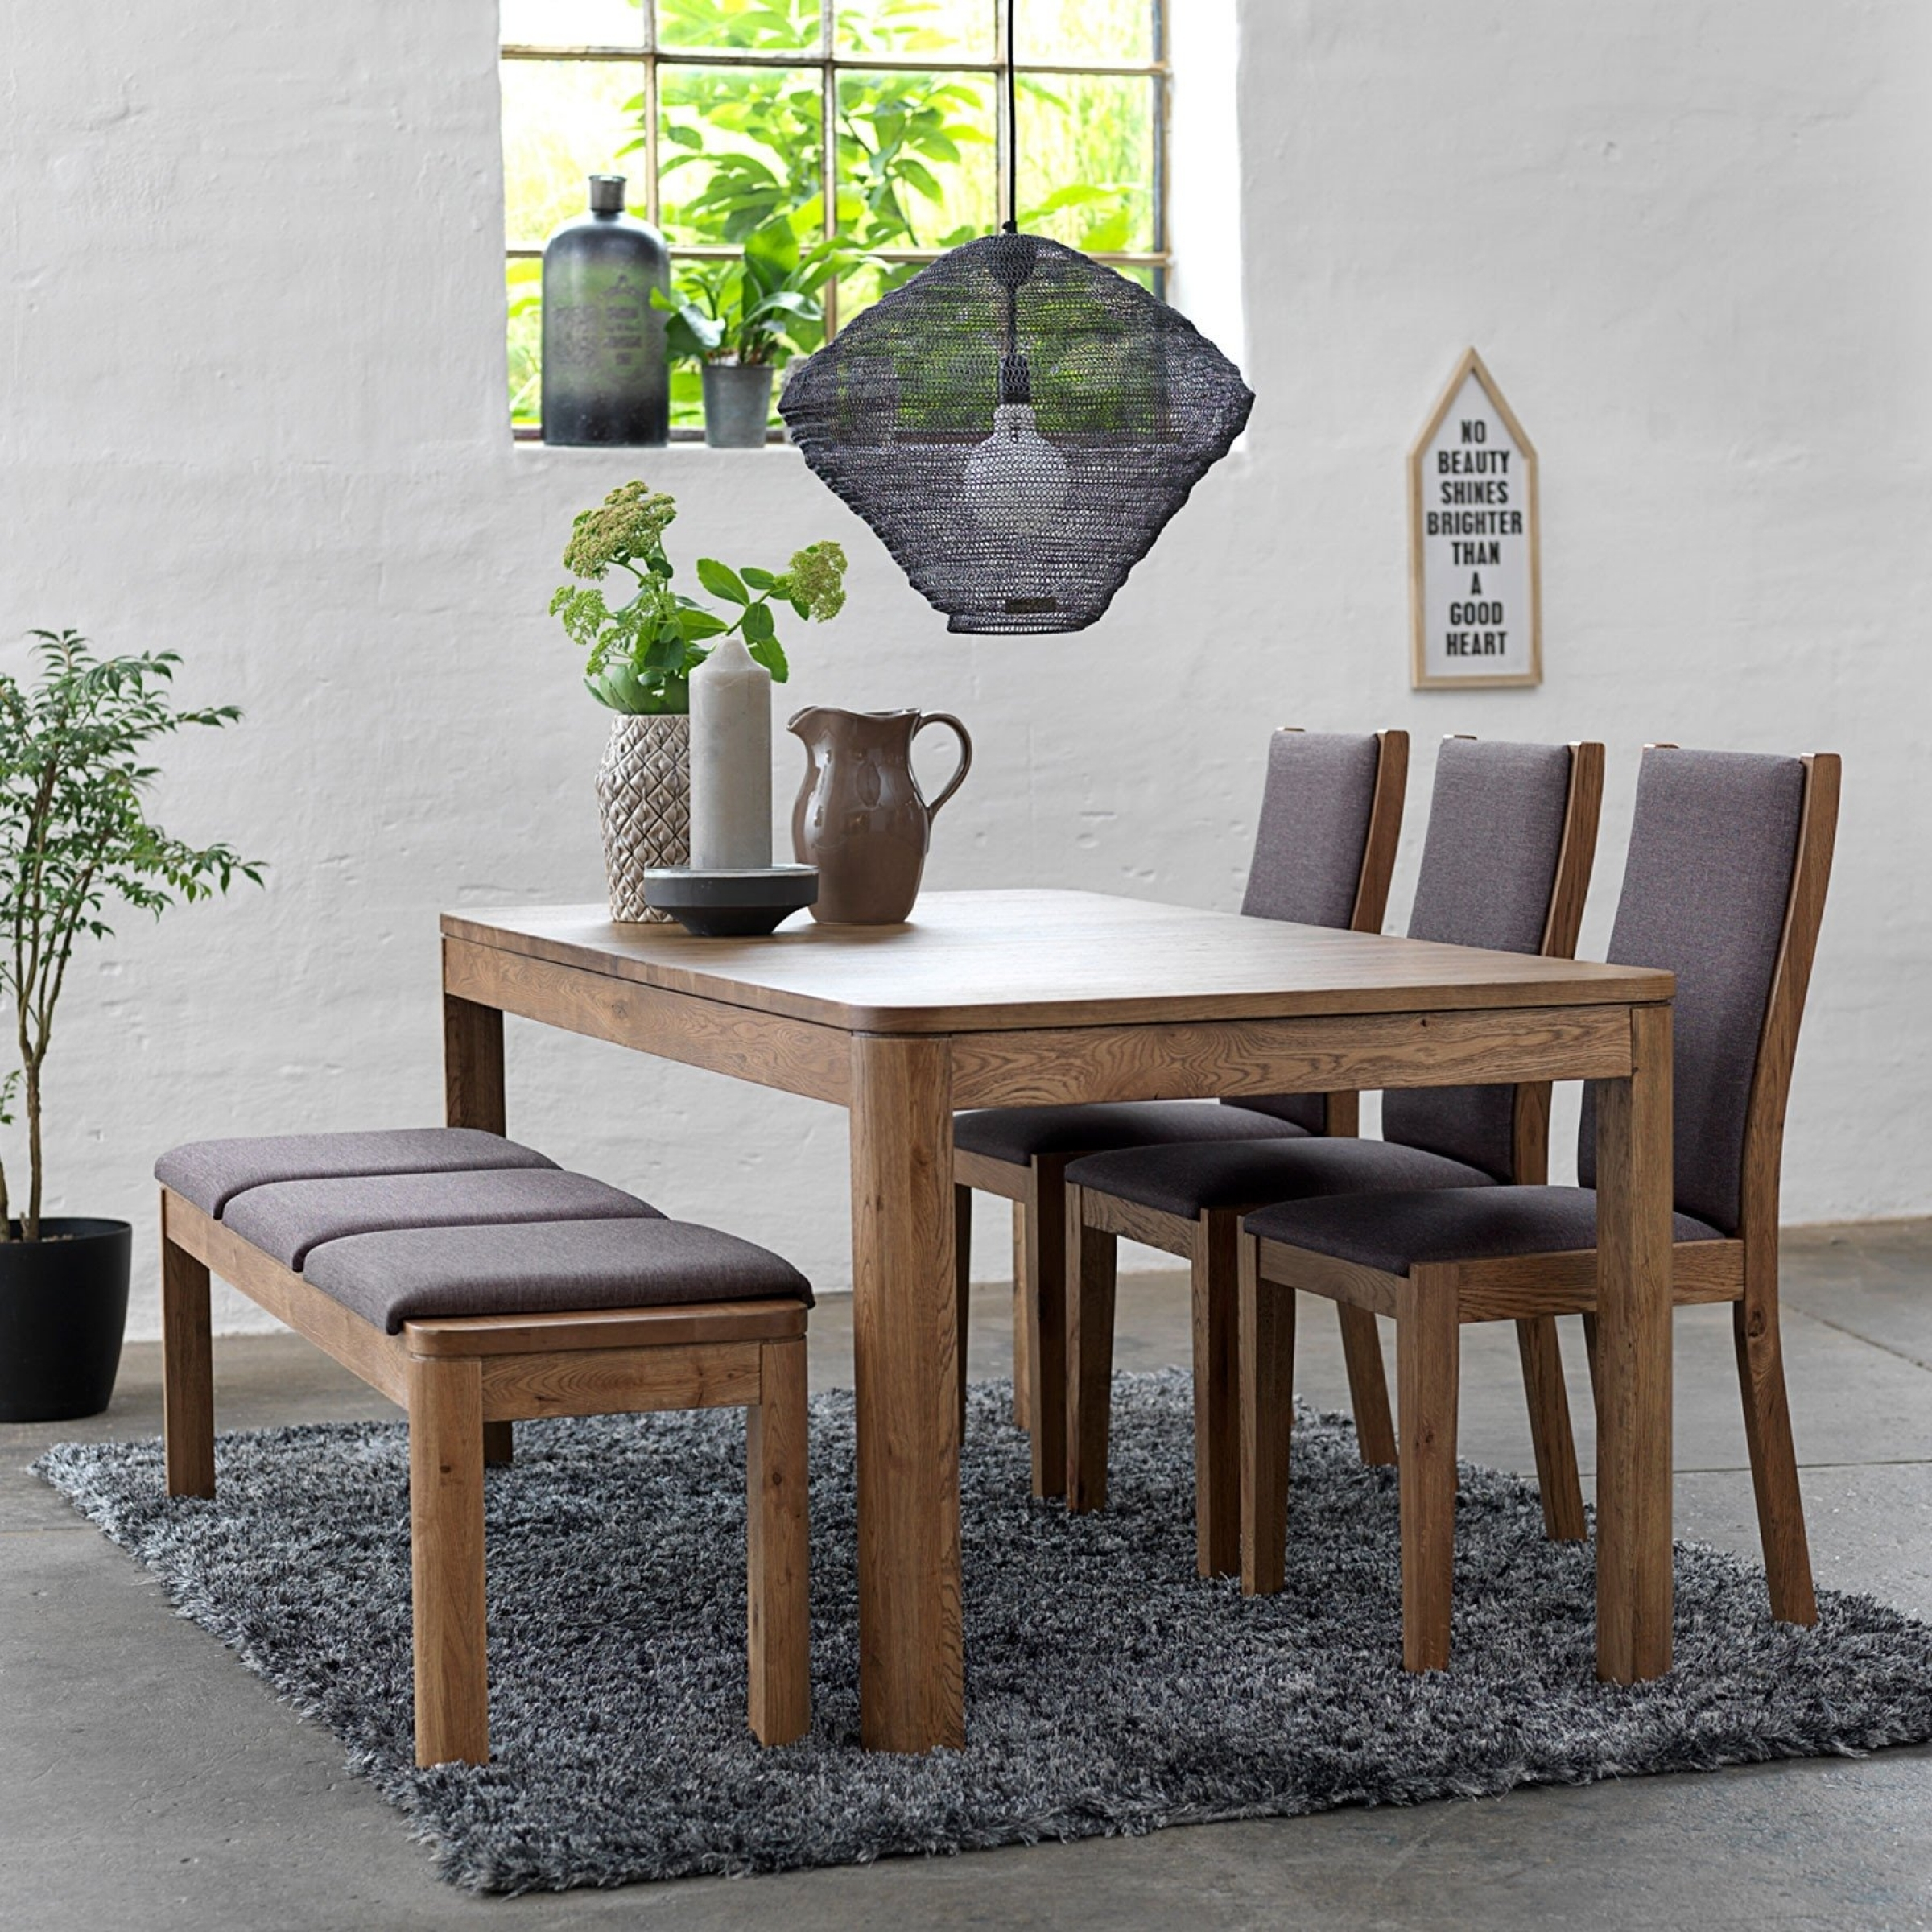 Dining Table With A Bench